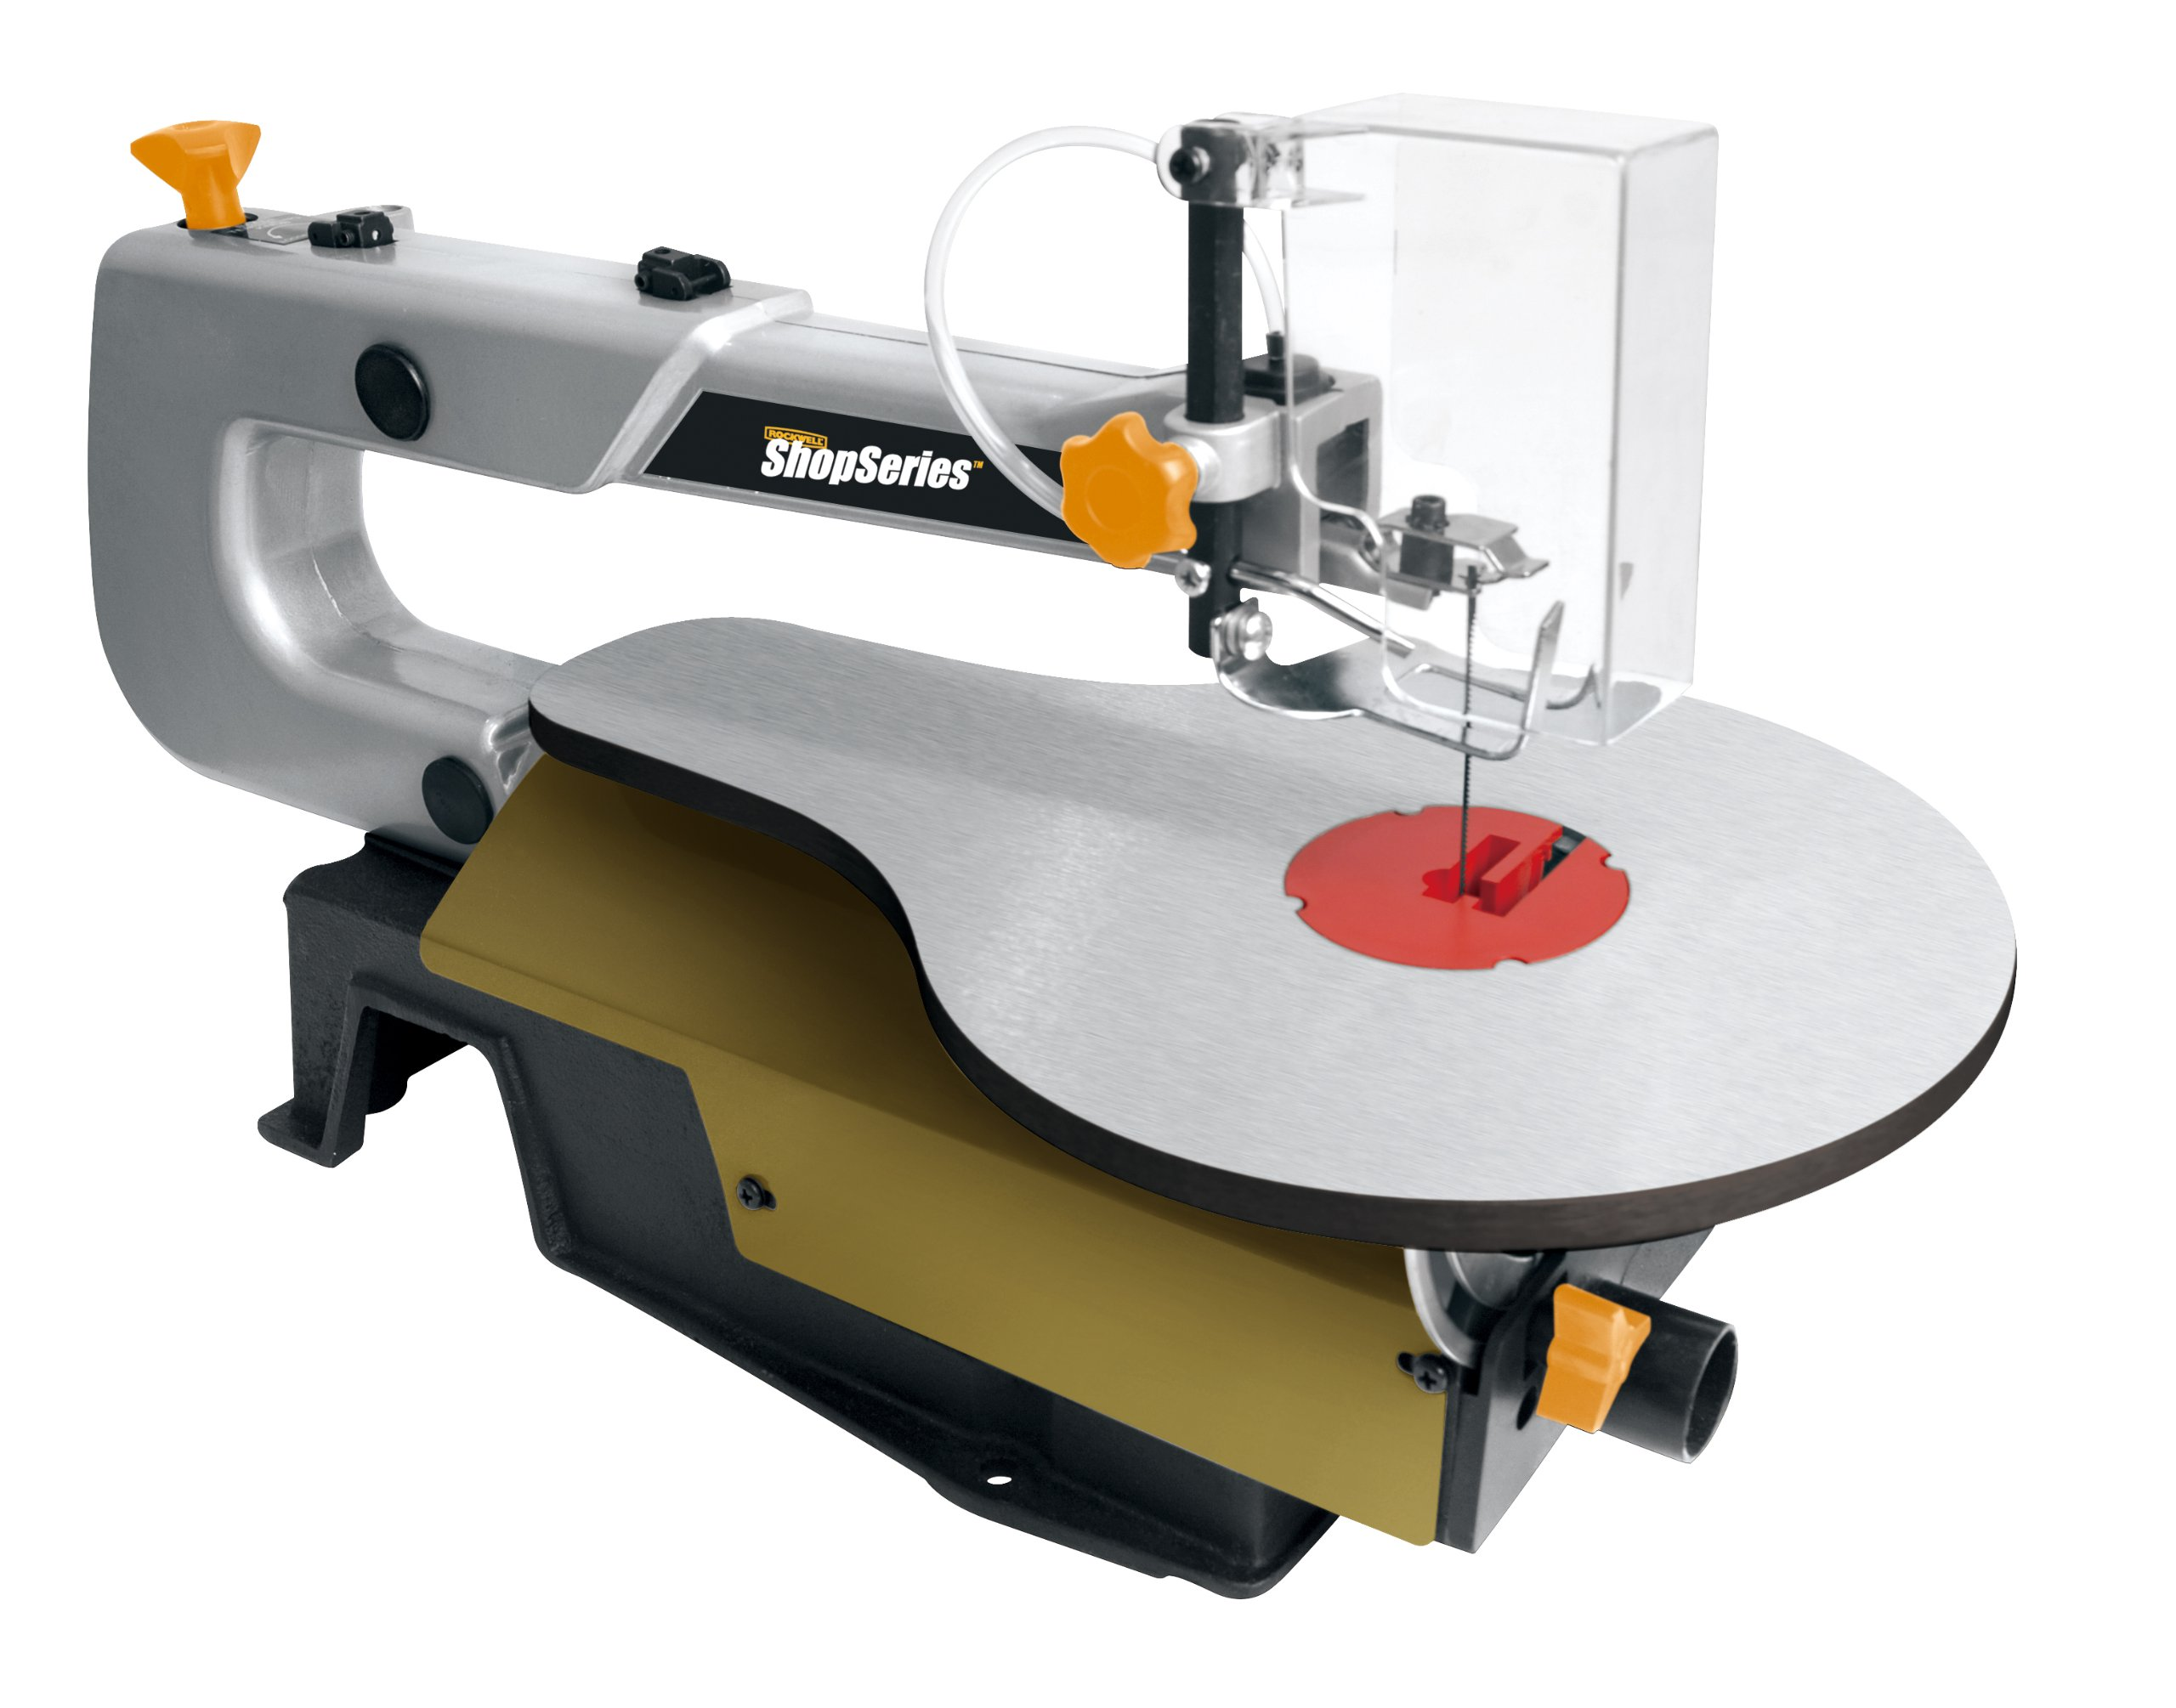 ShopSeries RK7315 16'' Scroll Saw with Variable Speed Control by Rockwell